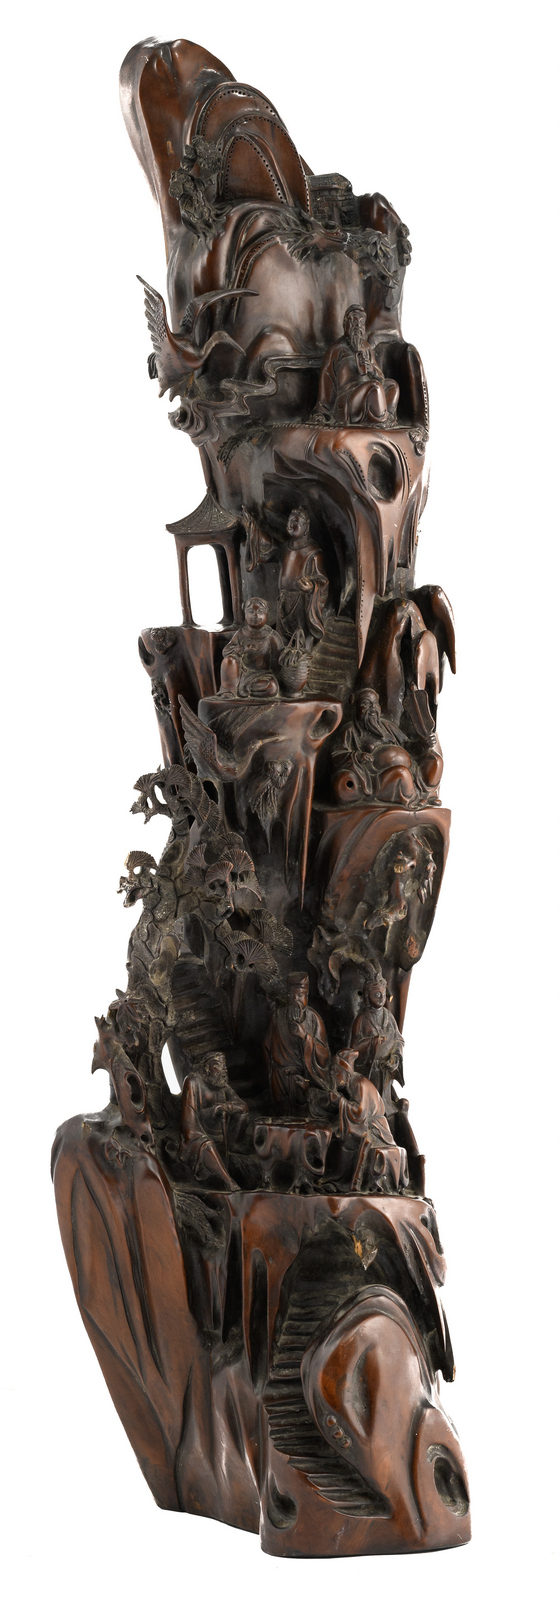 A Chinese wooden sculpture depicting the Eight Immortals in their habitat, about 1900, H 105 - W 30 - D 30 cm